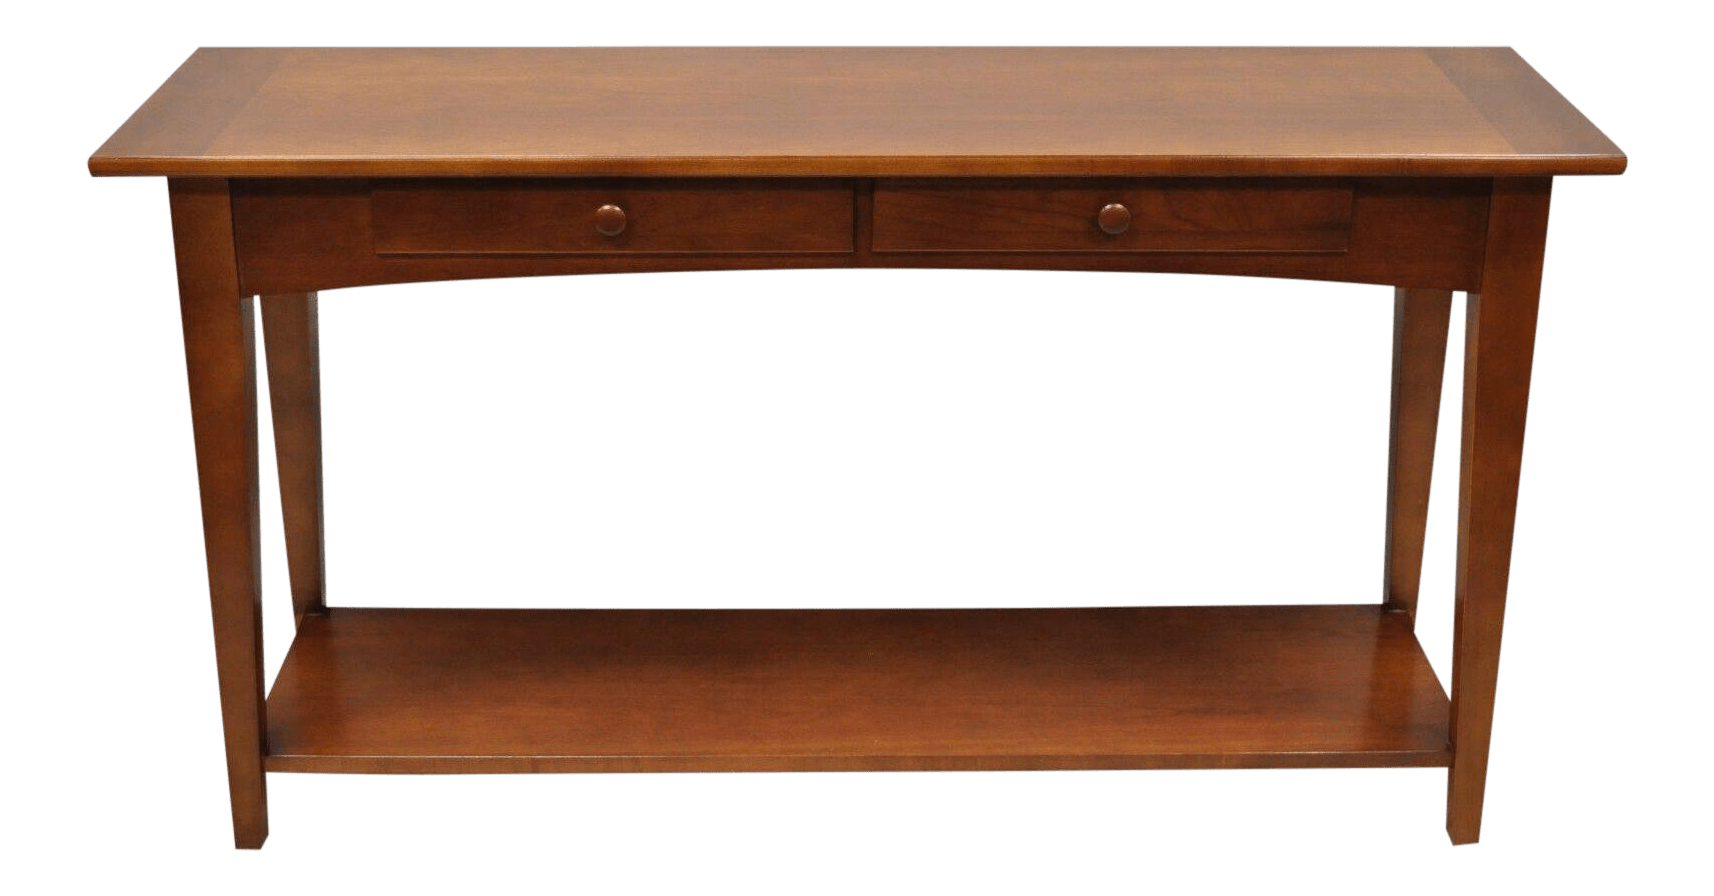 20th Century Arts And Crafts Stanley Cherry Wood Console Table